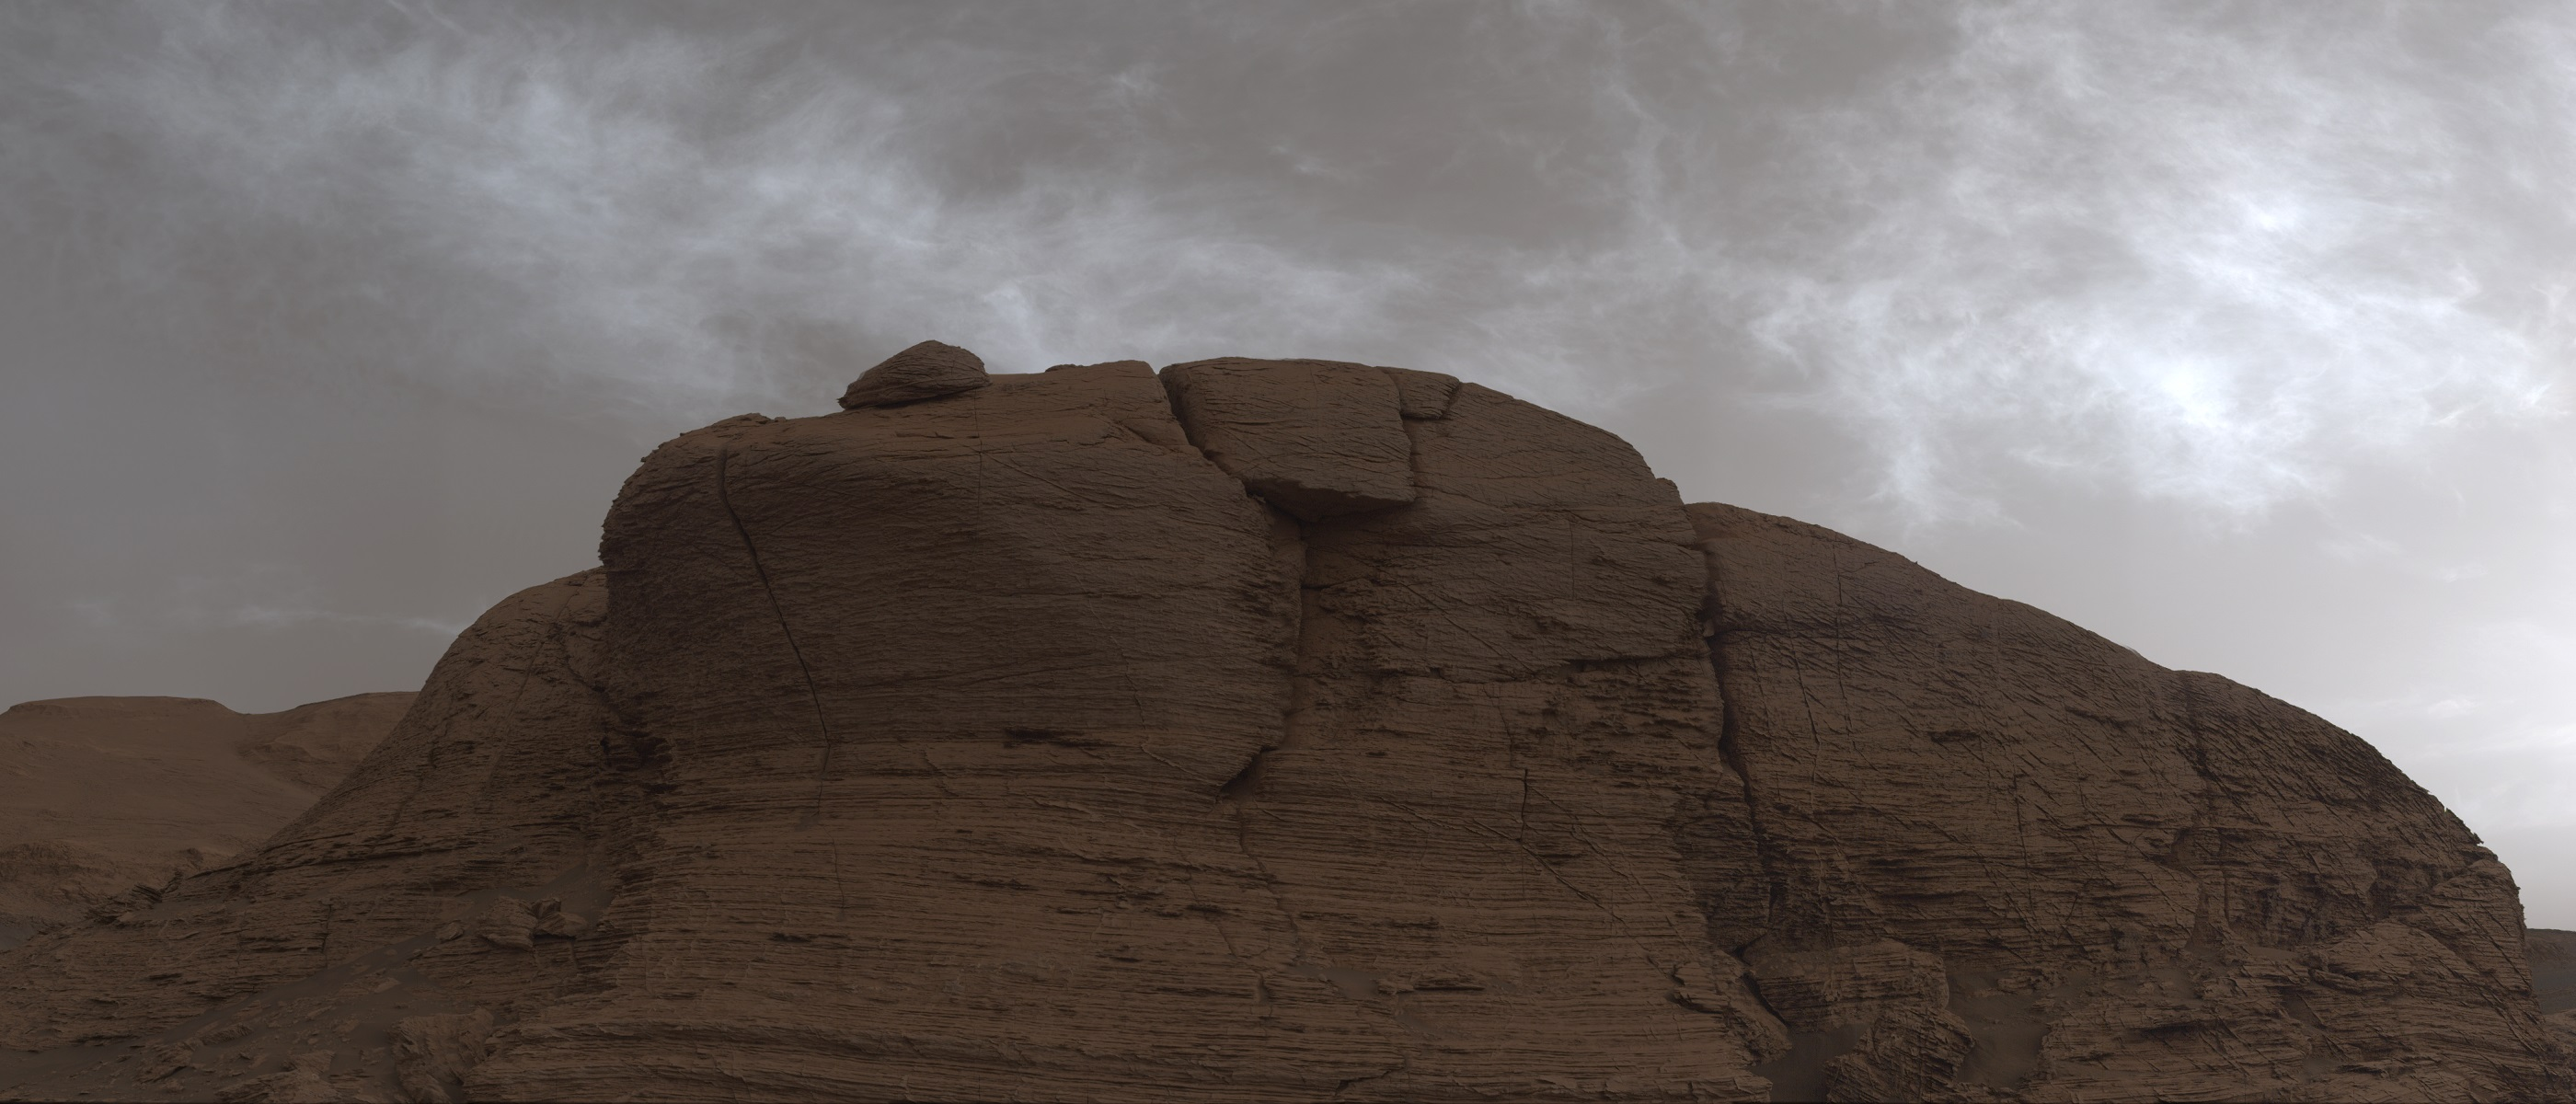 clouds pass above a cliff face on Mars